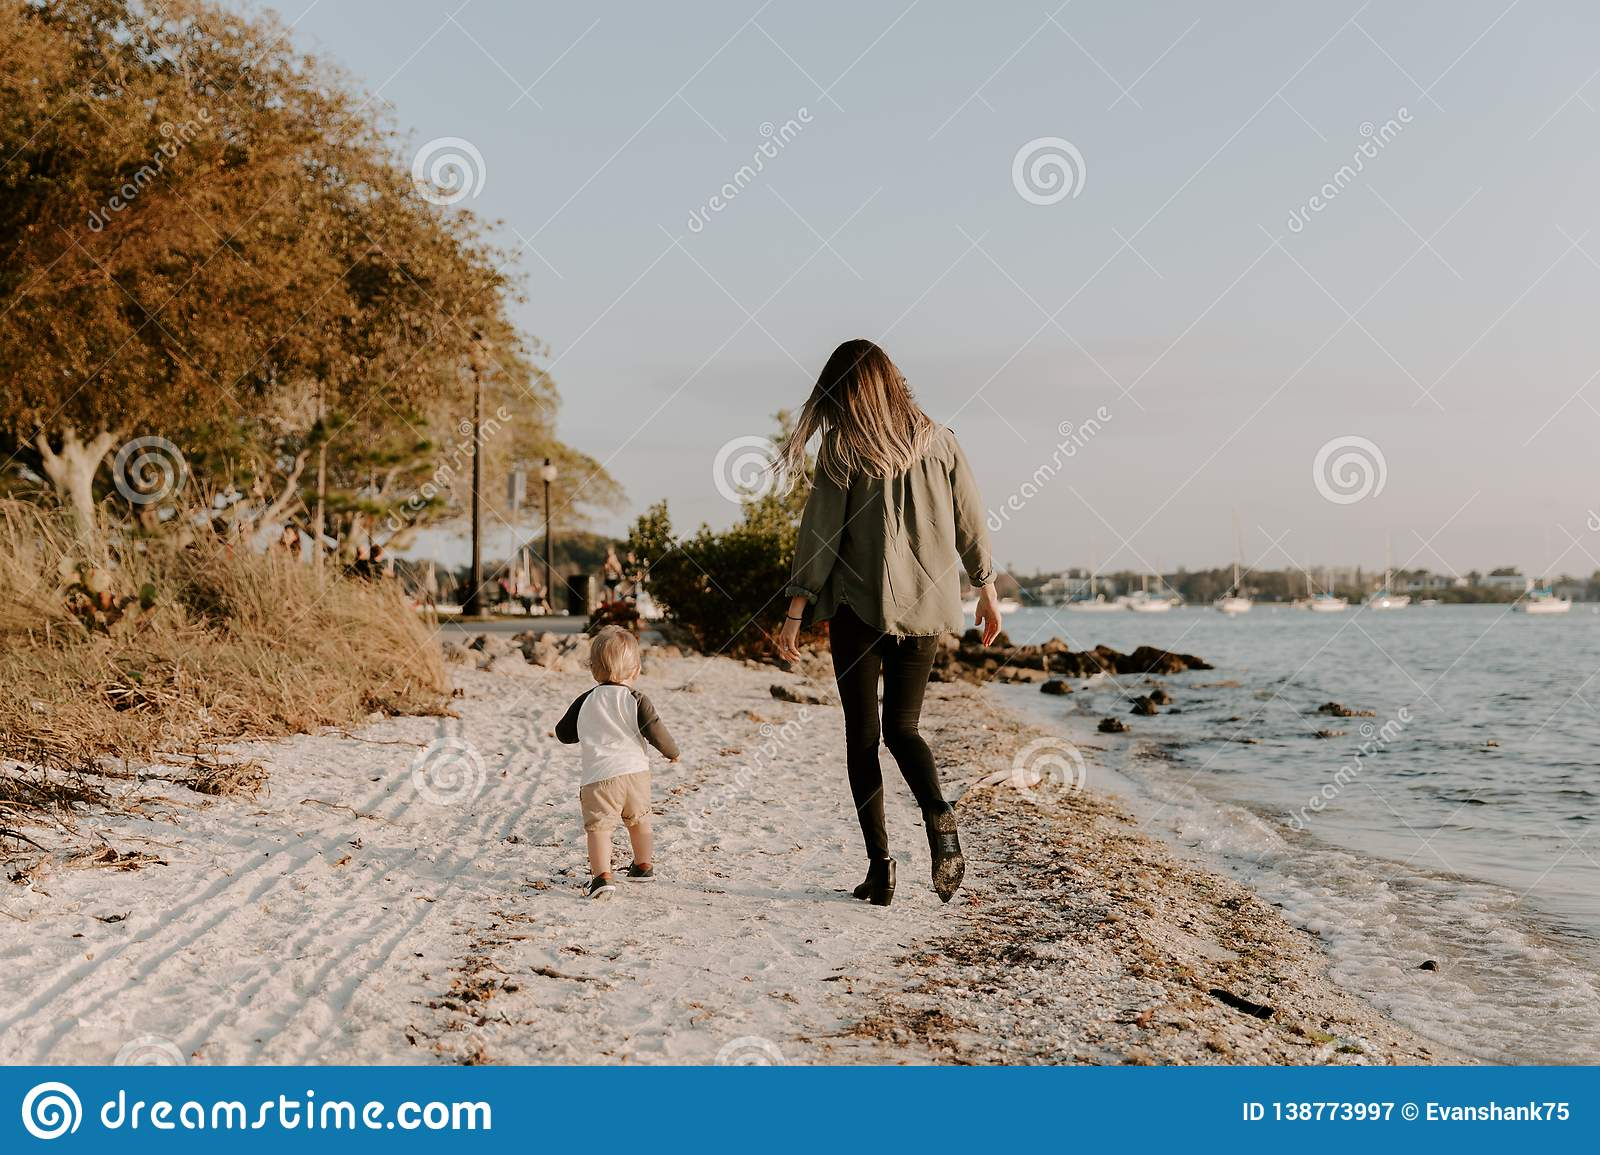 Beautiful Young Mother and Cute Little Boy Son Walking and Enjoying the Nice Outdoor Weather on the Sandy Beach next to the Ocean